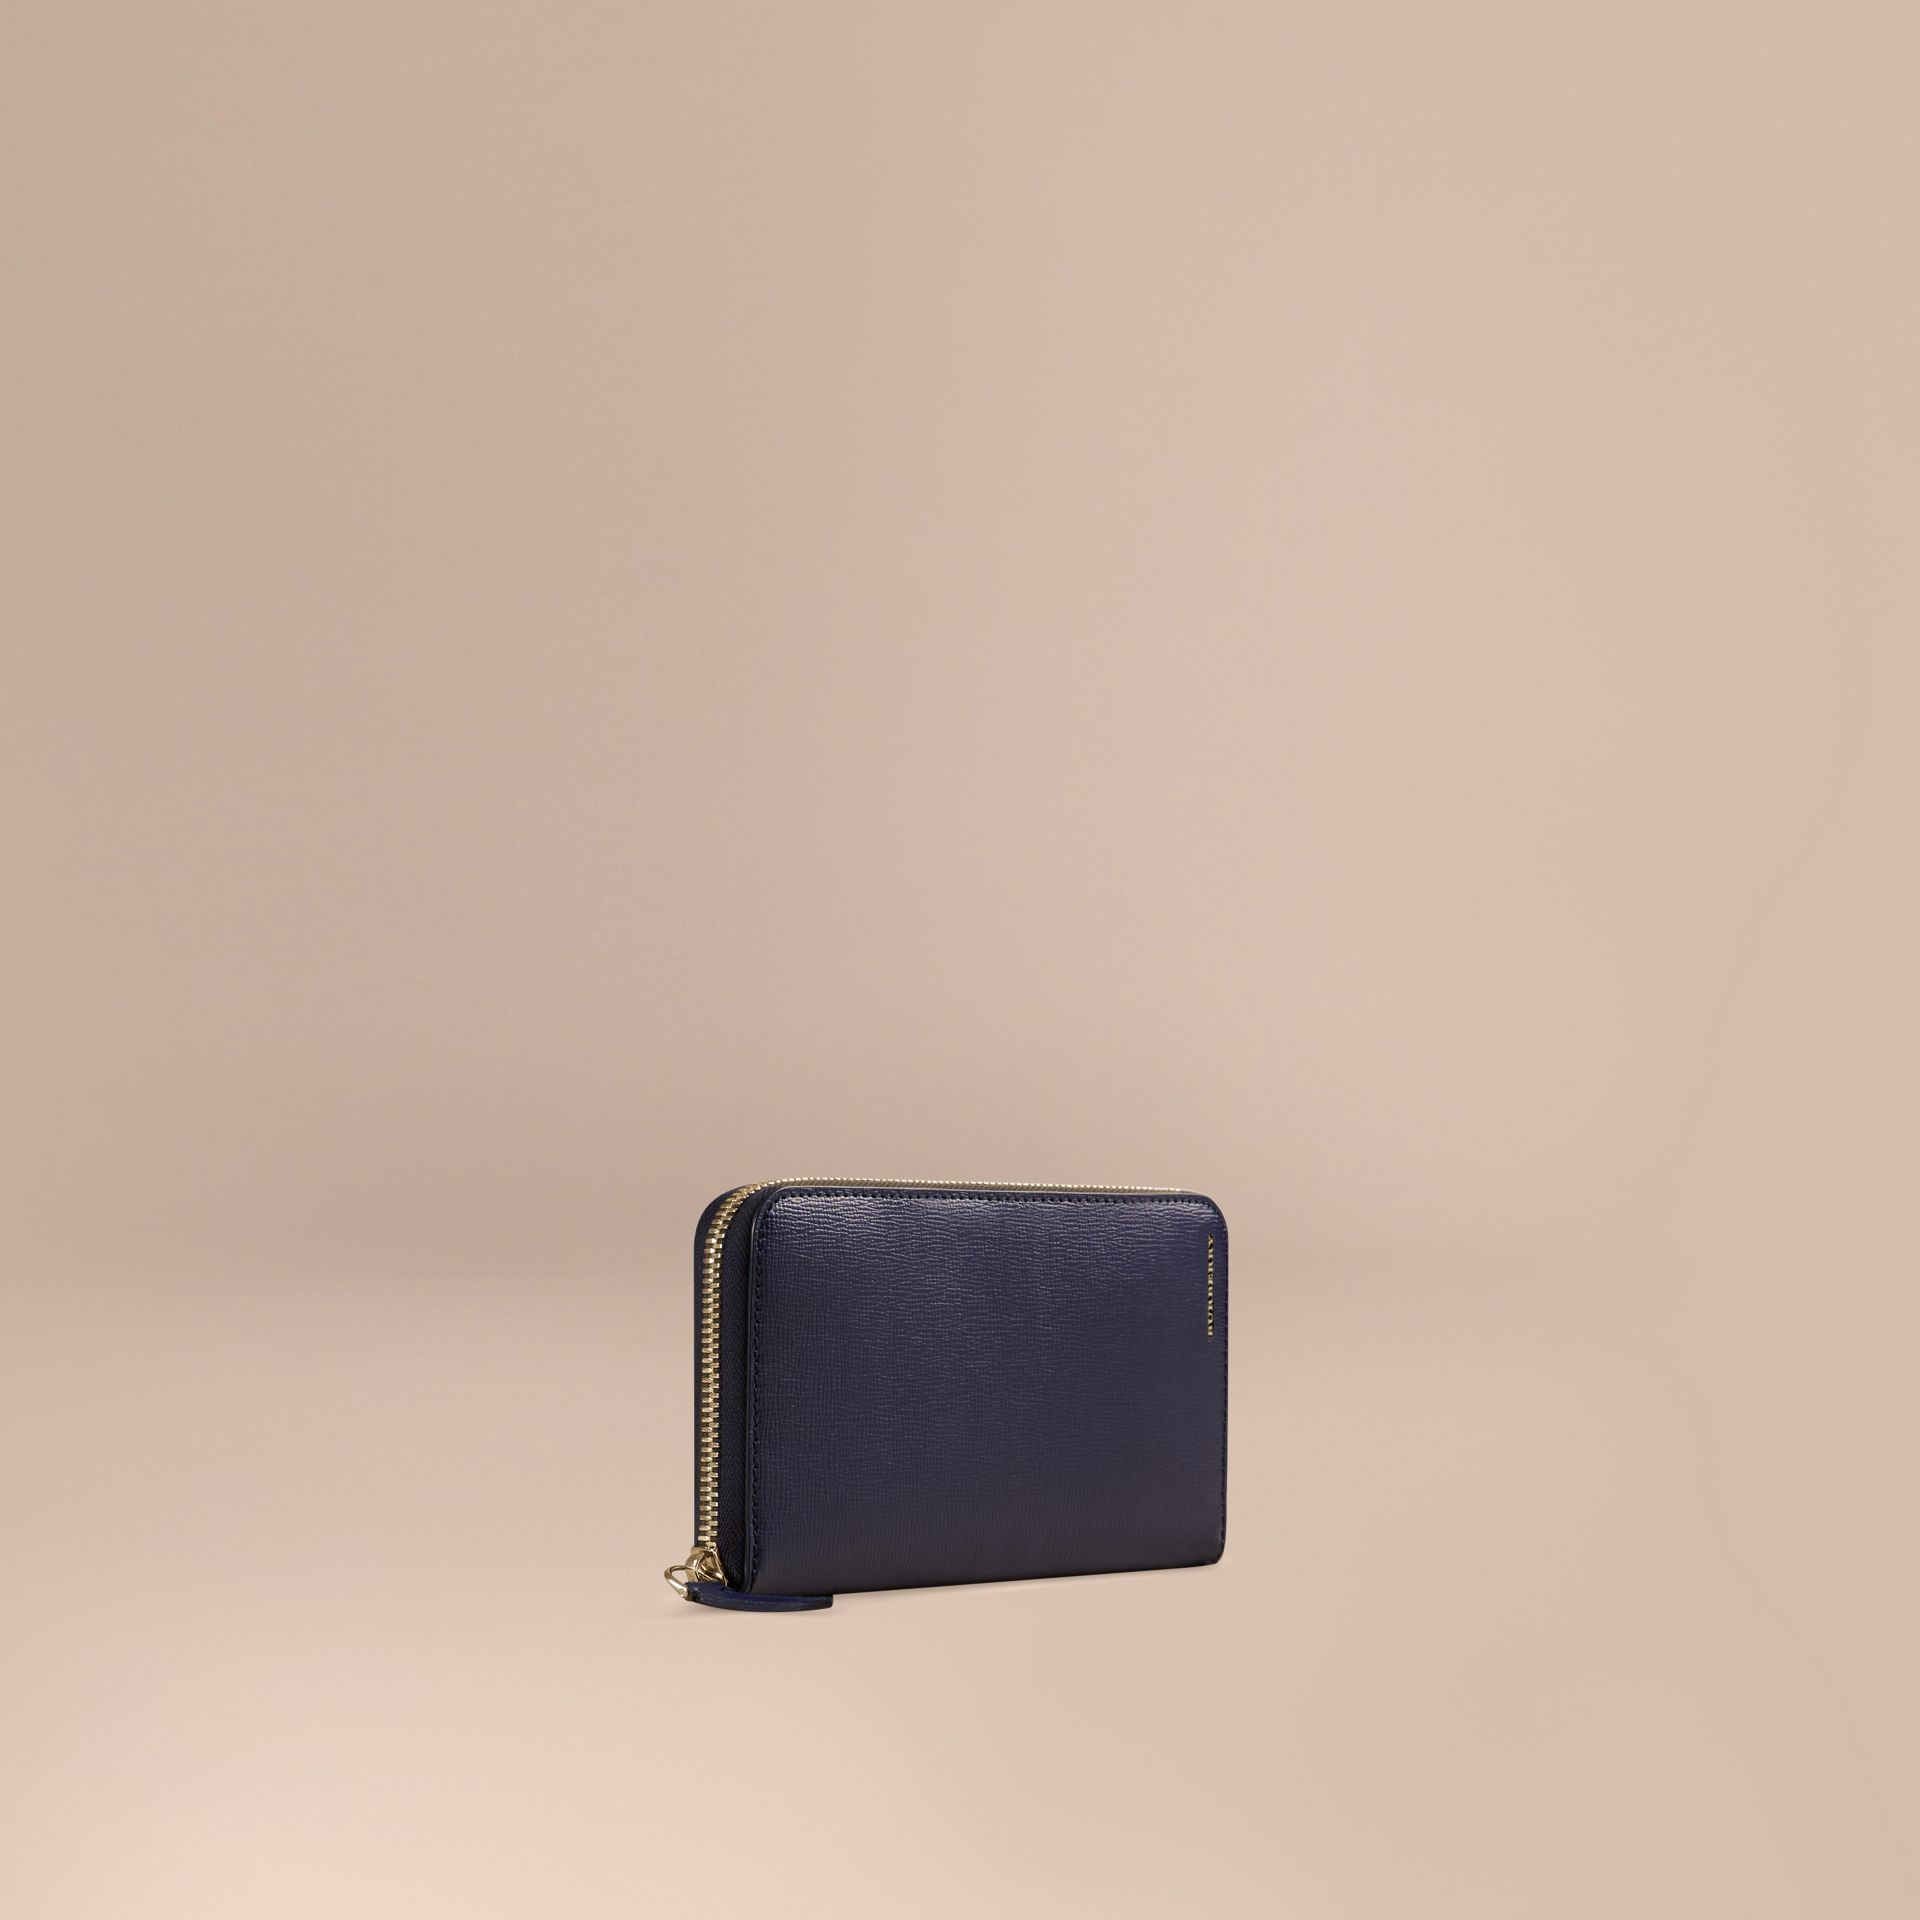 London Leather Ziparound Wallet Dark Navy - gallery image 1